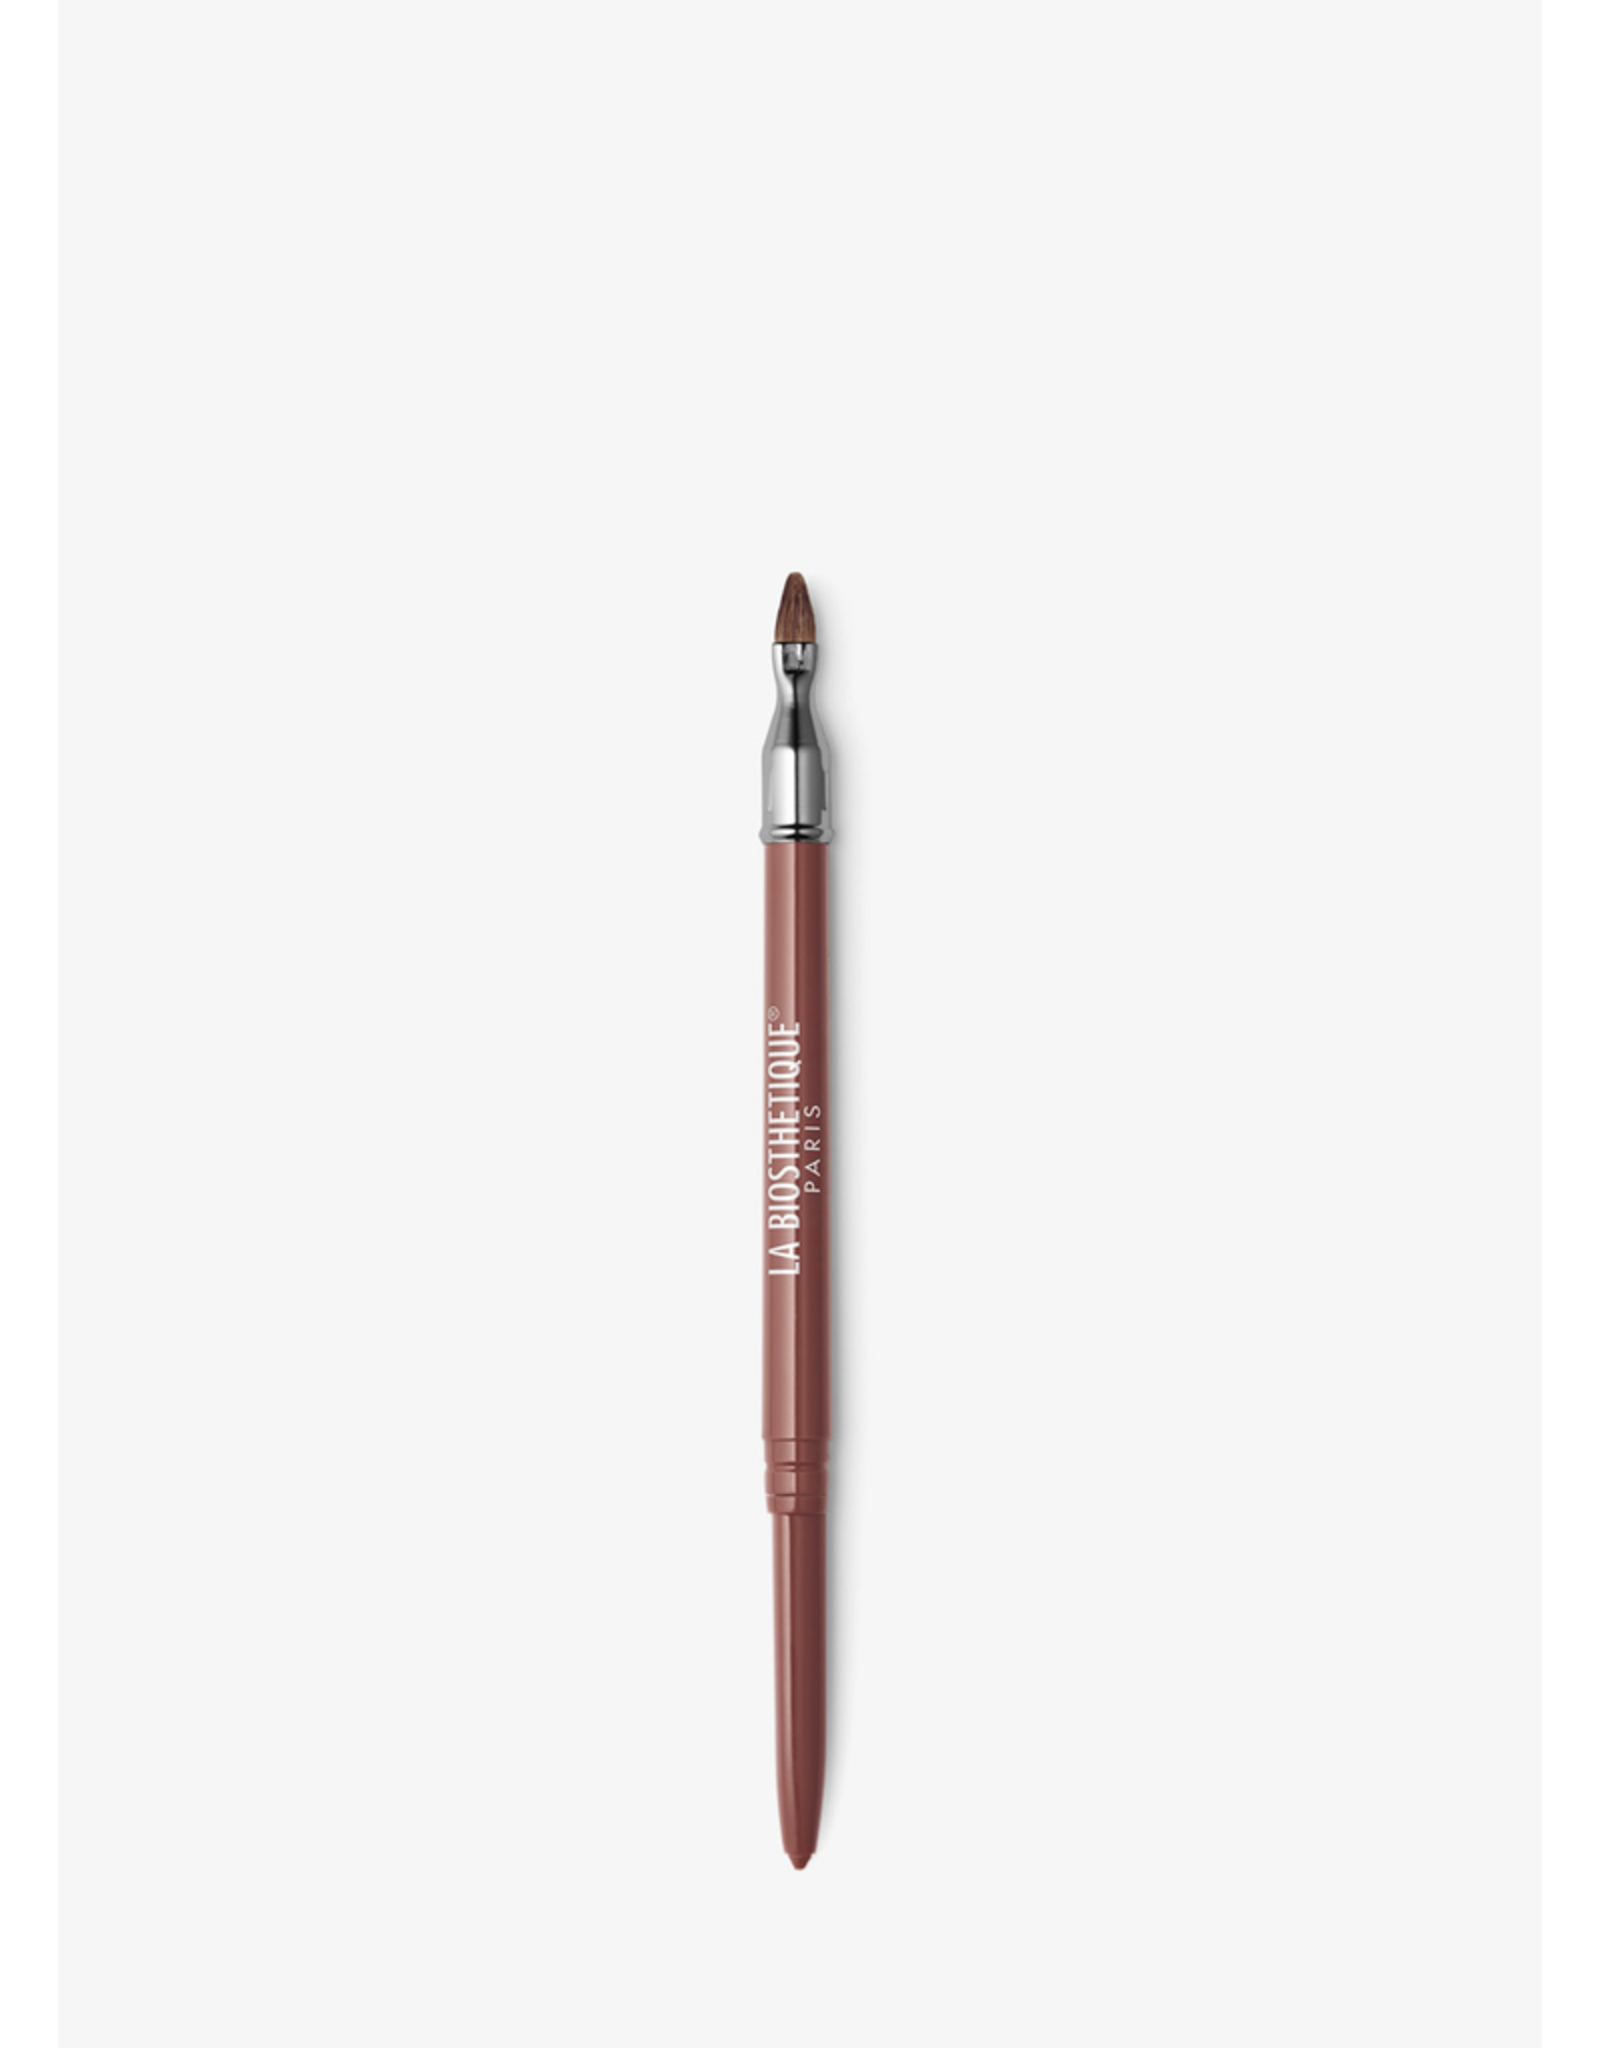 LA BIOSTHETIQUE Automatic Pencil for Lips LL21 - Natural Beige (0.28 g)